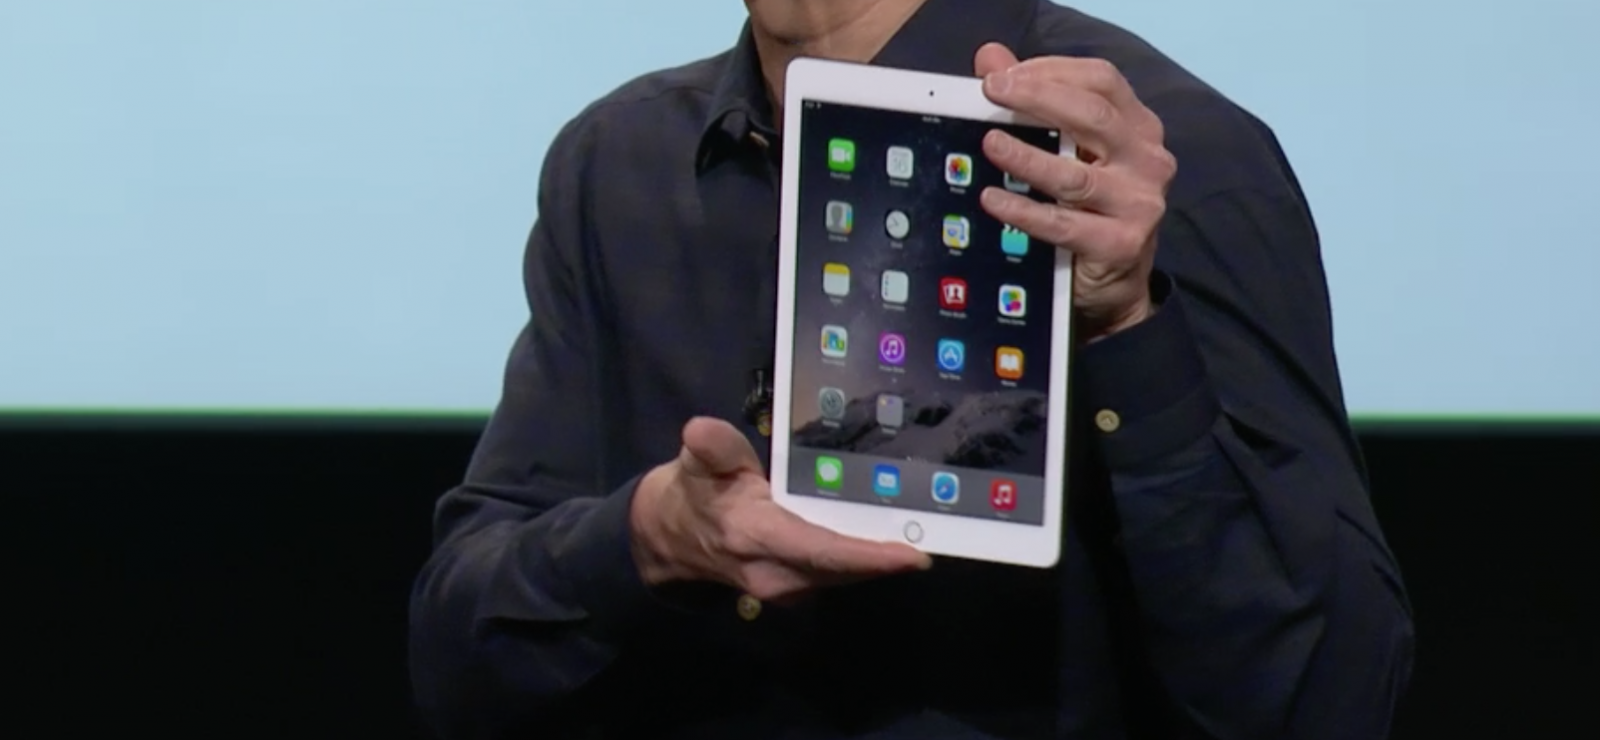 iPad Air 2 launched